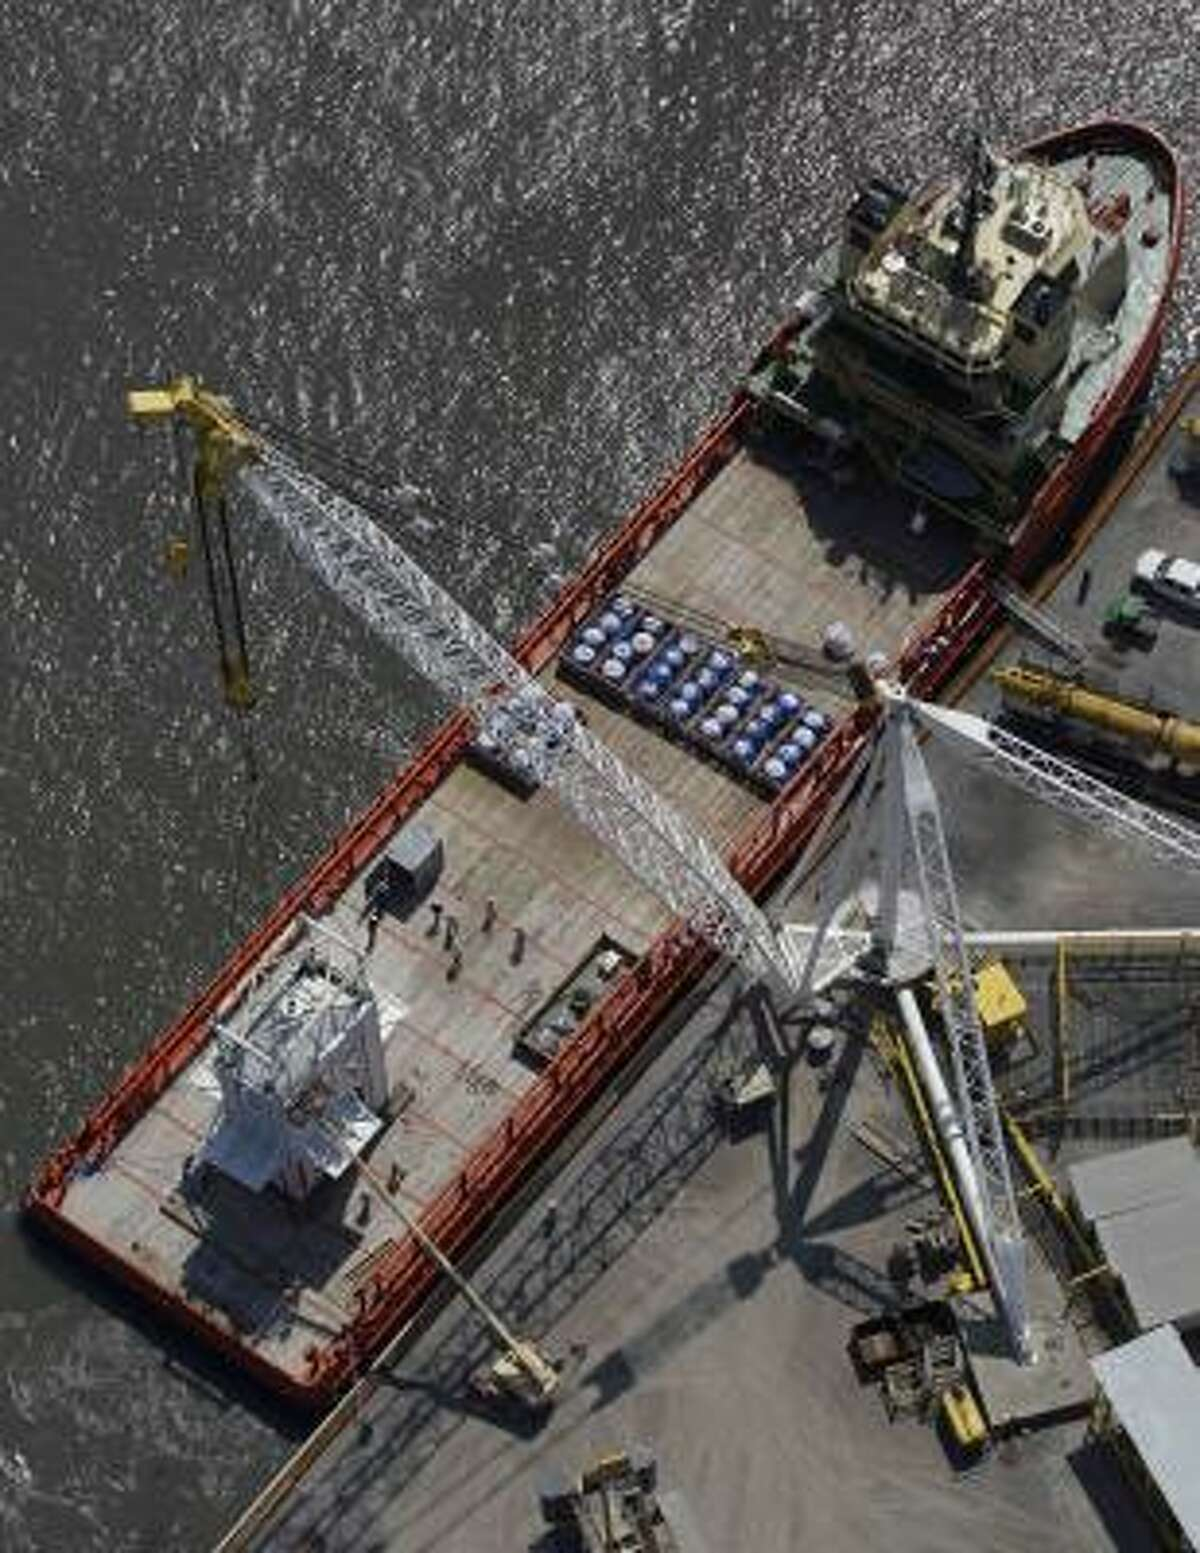 A containment dome, left, made for the leak created by the recent collapse of the Deepwater Horizon oil rig is loaded by crane on to a ship, at the Port of Fourchon, La., Wednesday, May 5, 2010.